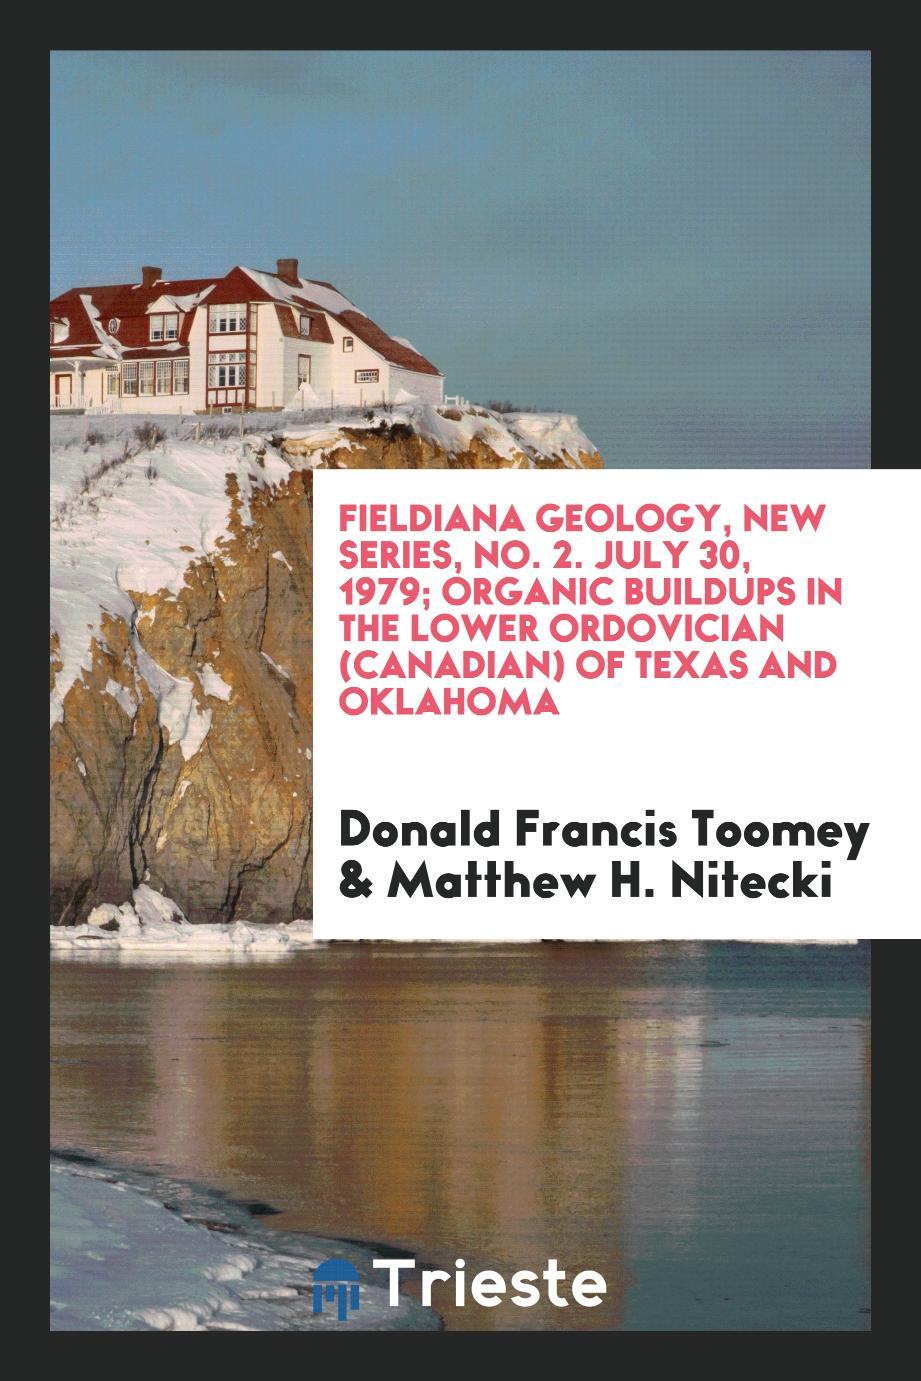 Fieldiana geology, New series, No. 2. July 30, 1979; Organic buildups in the Lower Ordovician (Canadian) of Texas and Oklahoma